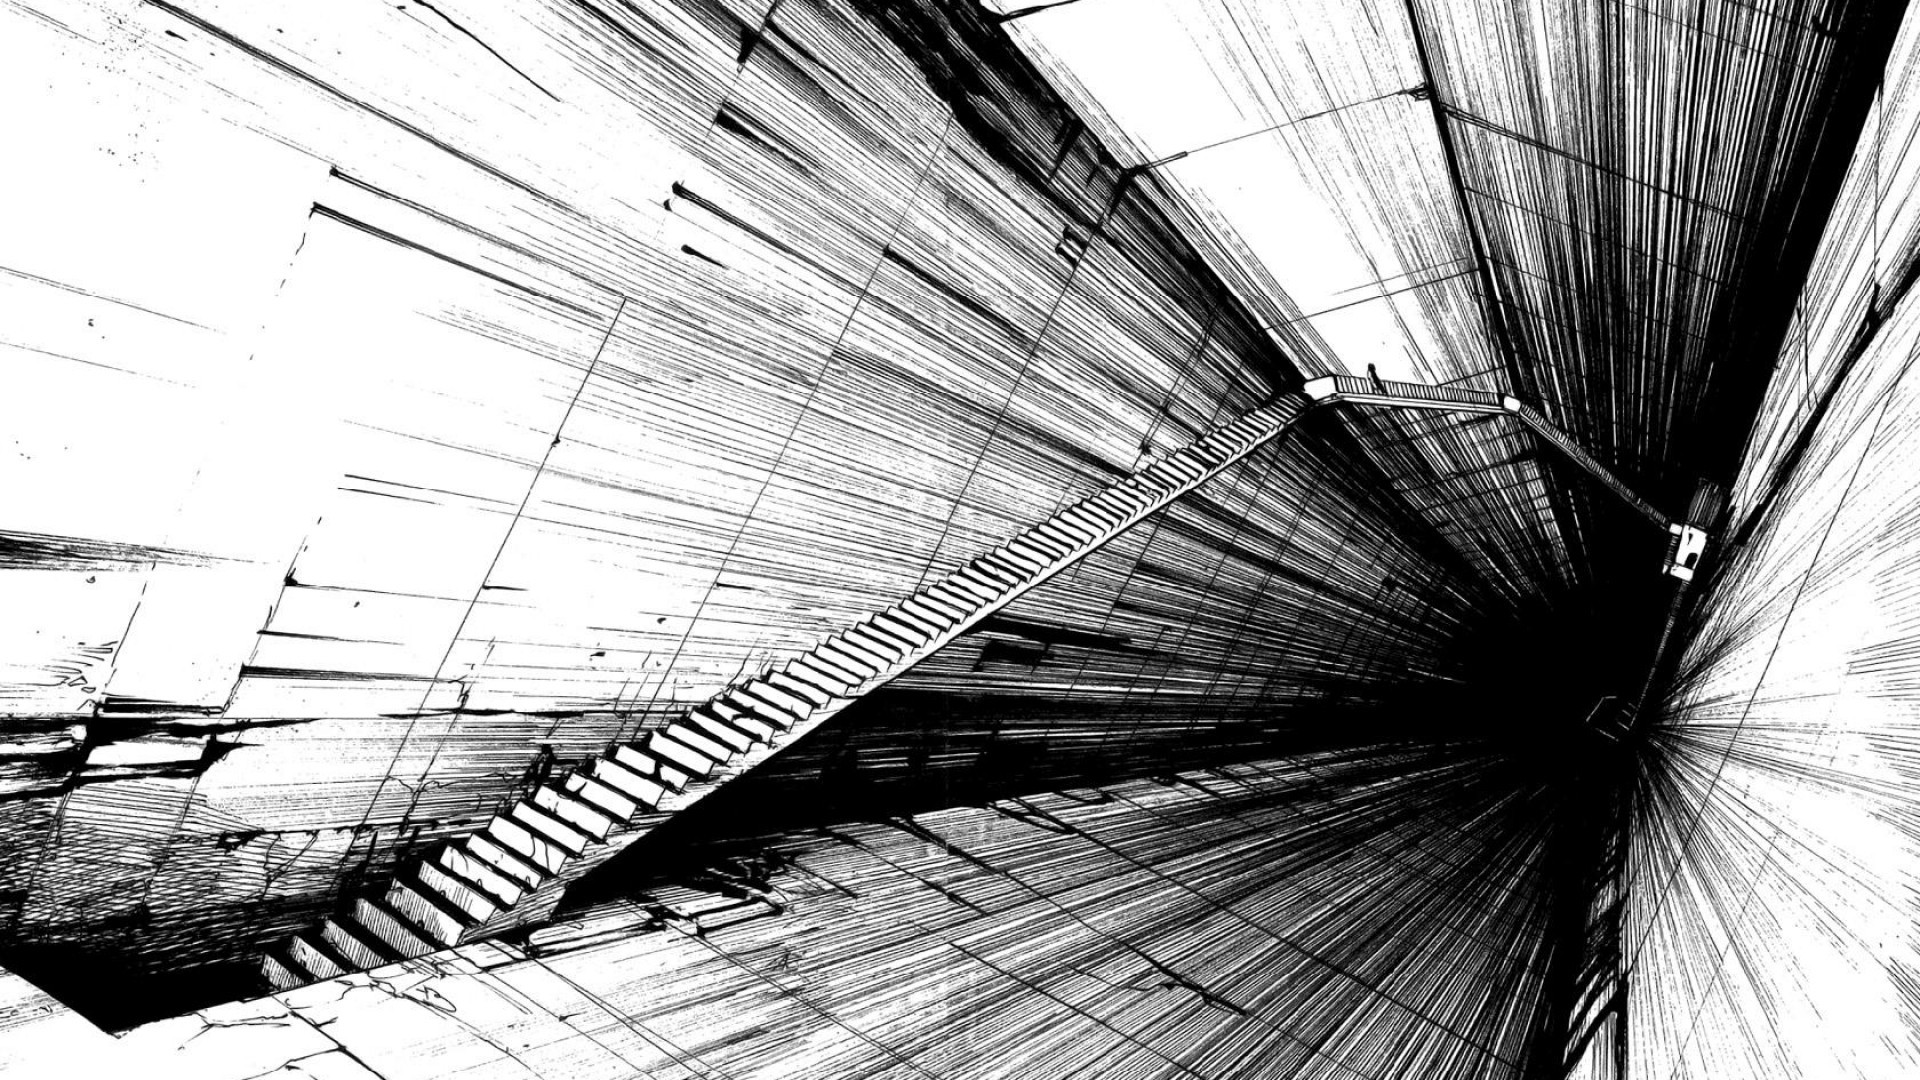 Res: 1920x1080, Download Original Wallpaper Category:3d and abstract ...